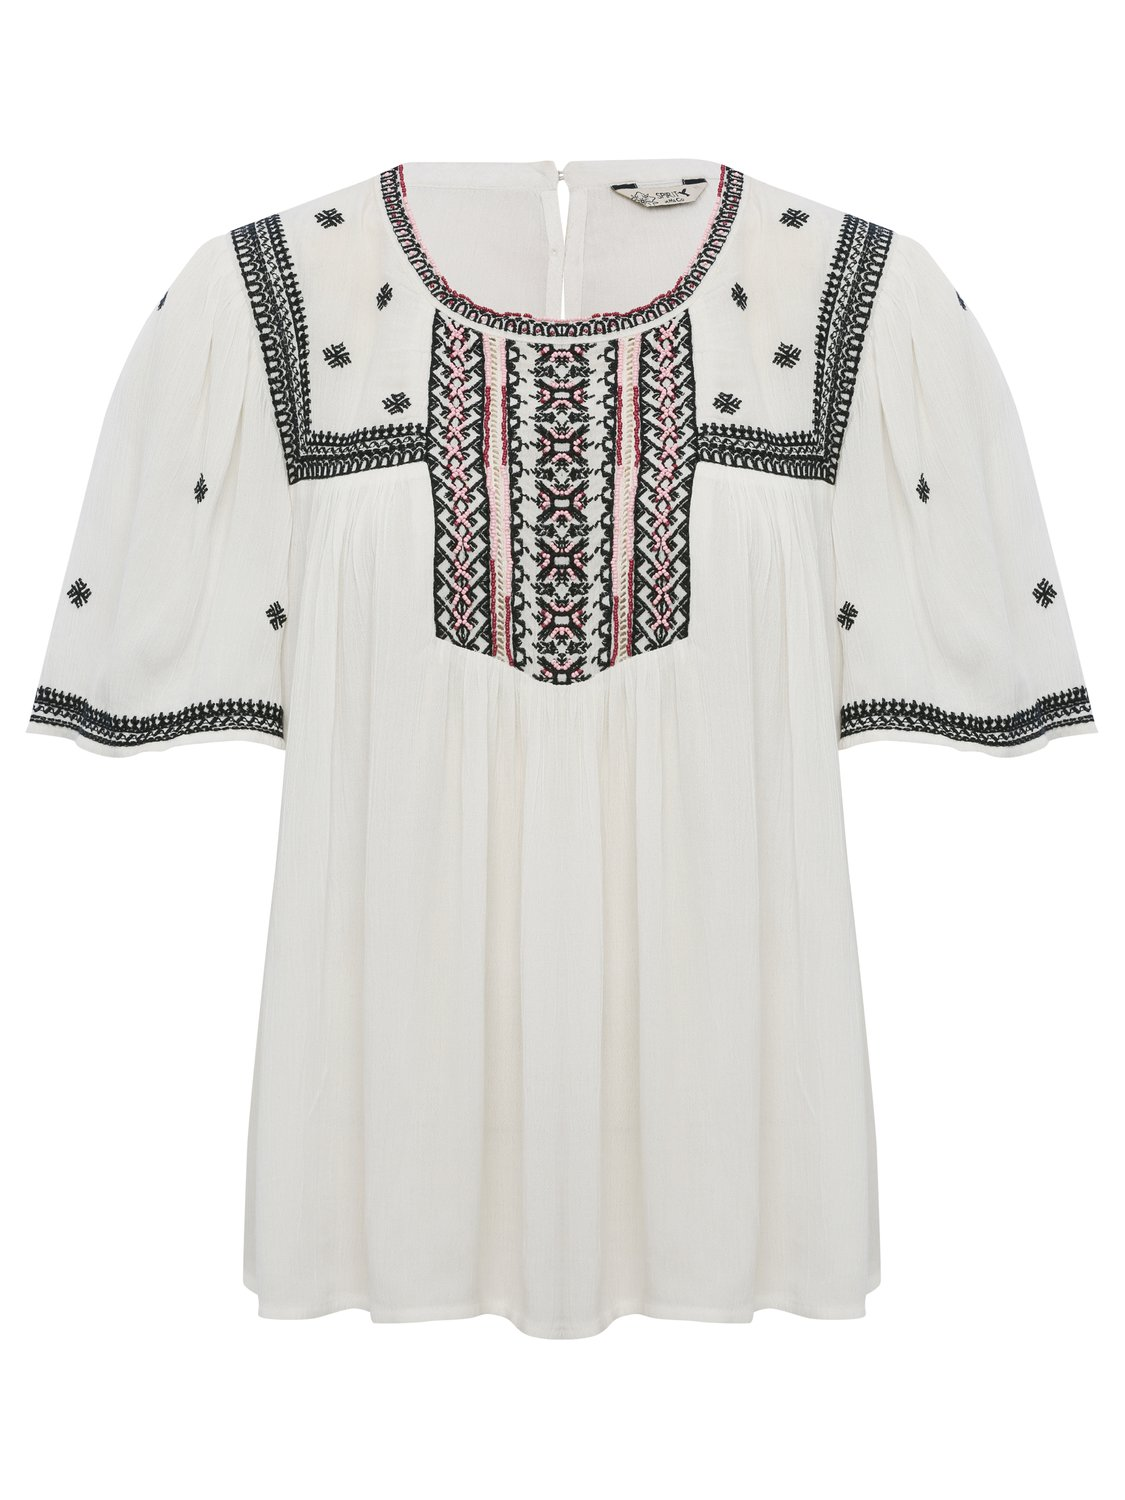 women's ladies short sleeve scoop neck bead embellished tribal embroidered top